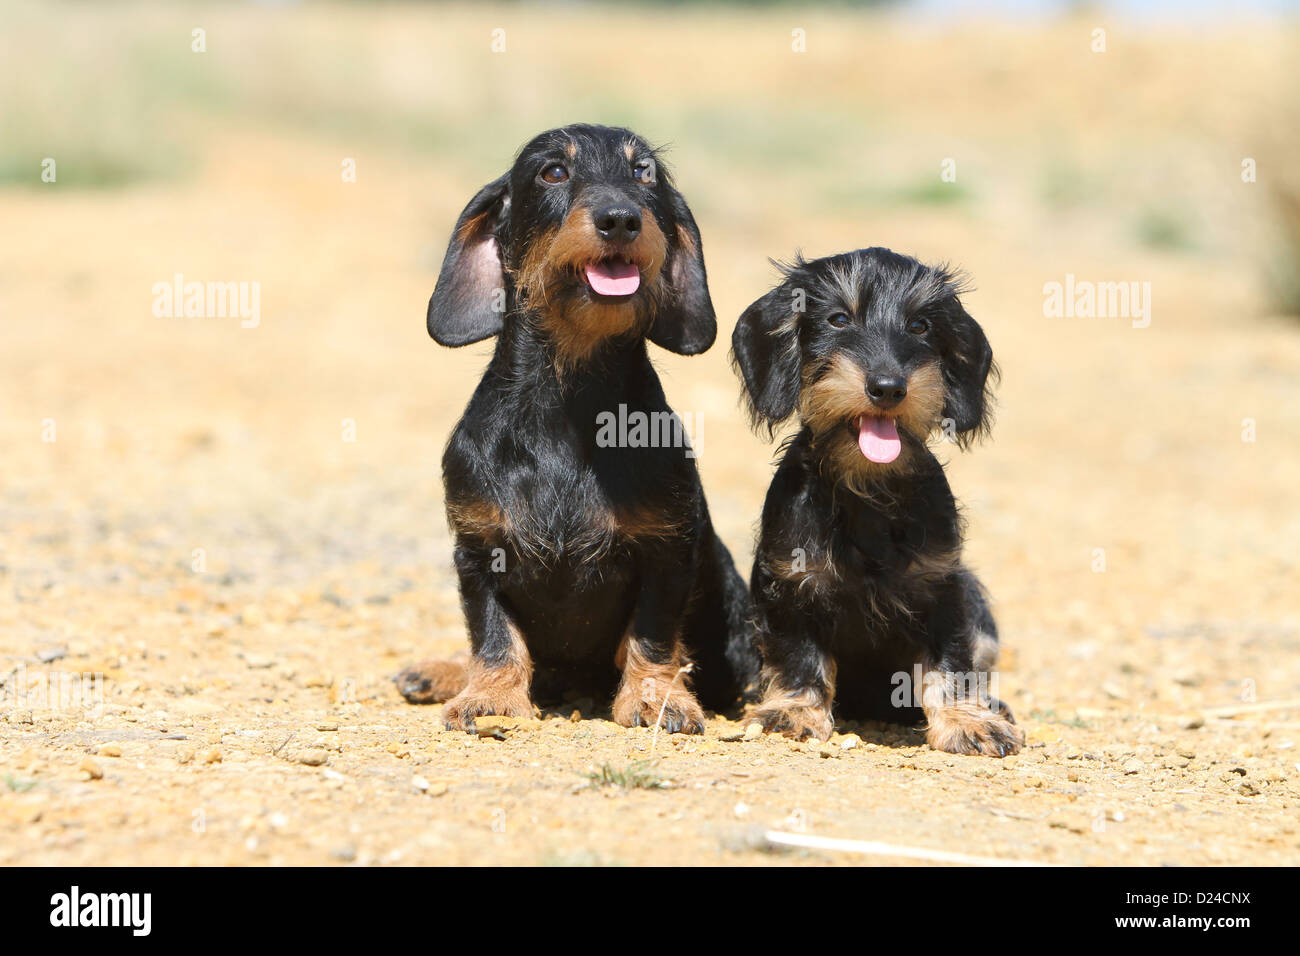 Tan Wire Dachshund Center 110v 50 Amp Male Plug 2539 Long Pigtail Arcon Rv Wiring Ar14250 Dog Dackel Teckel Wirehaired Adult And Puppy Black Rh Alamy Com Chocolate